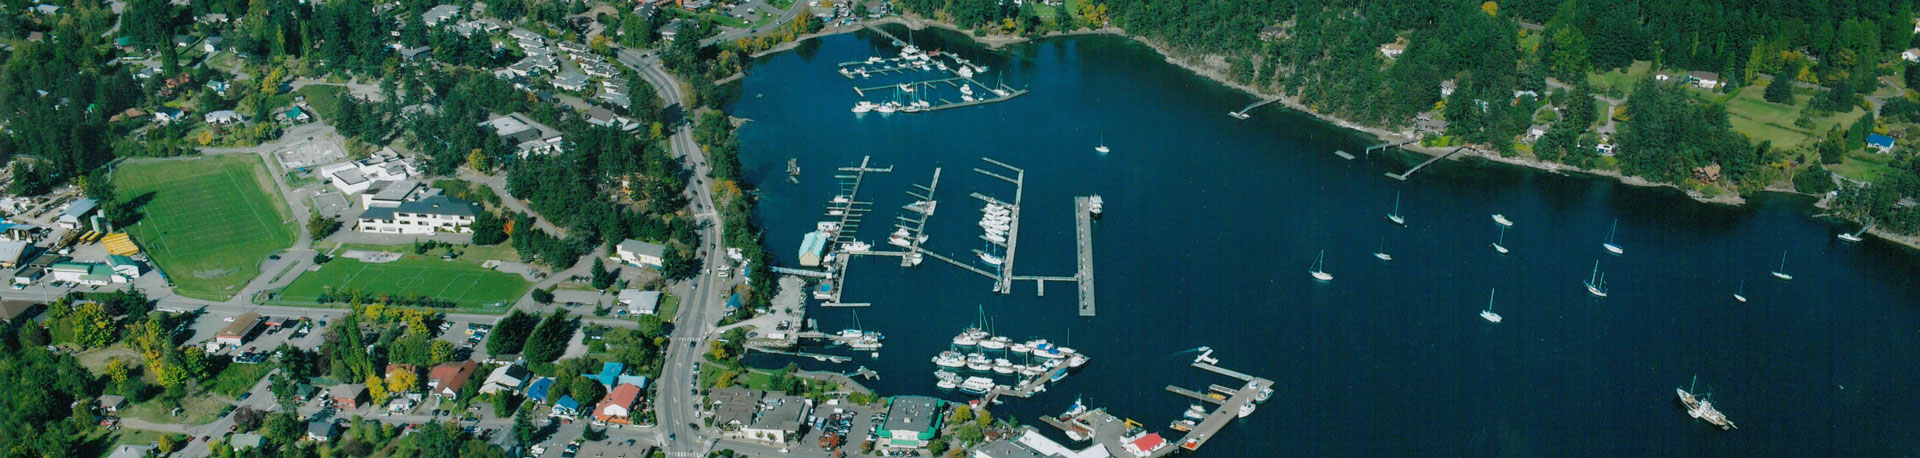 Aerial view of a harbour town in an ocean bay